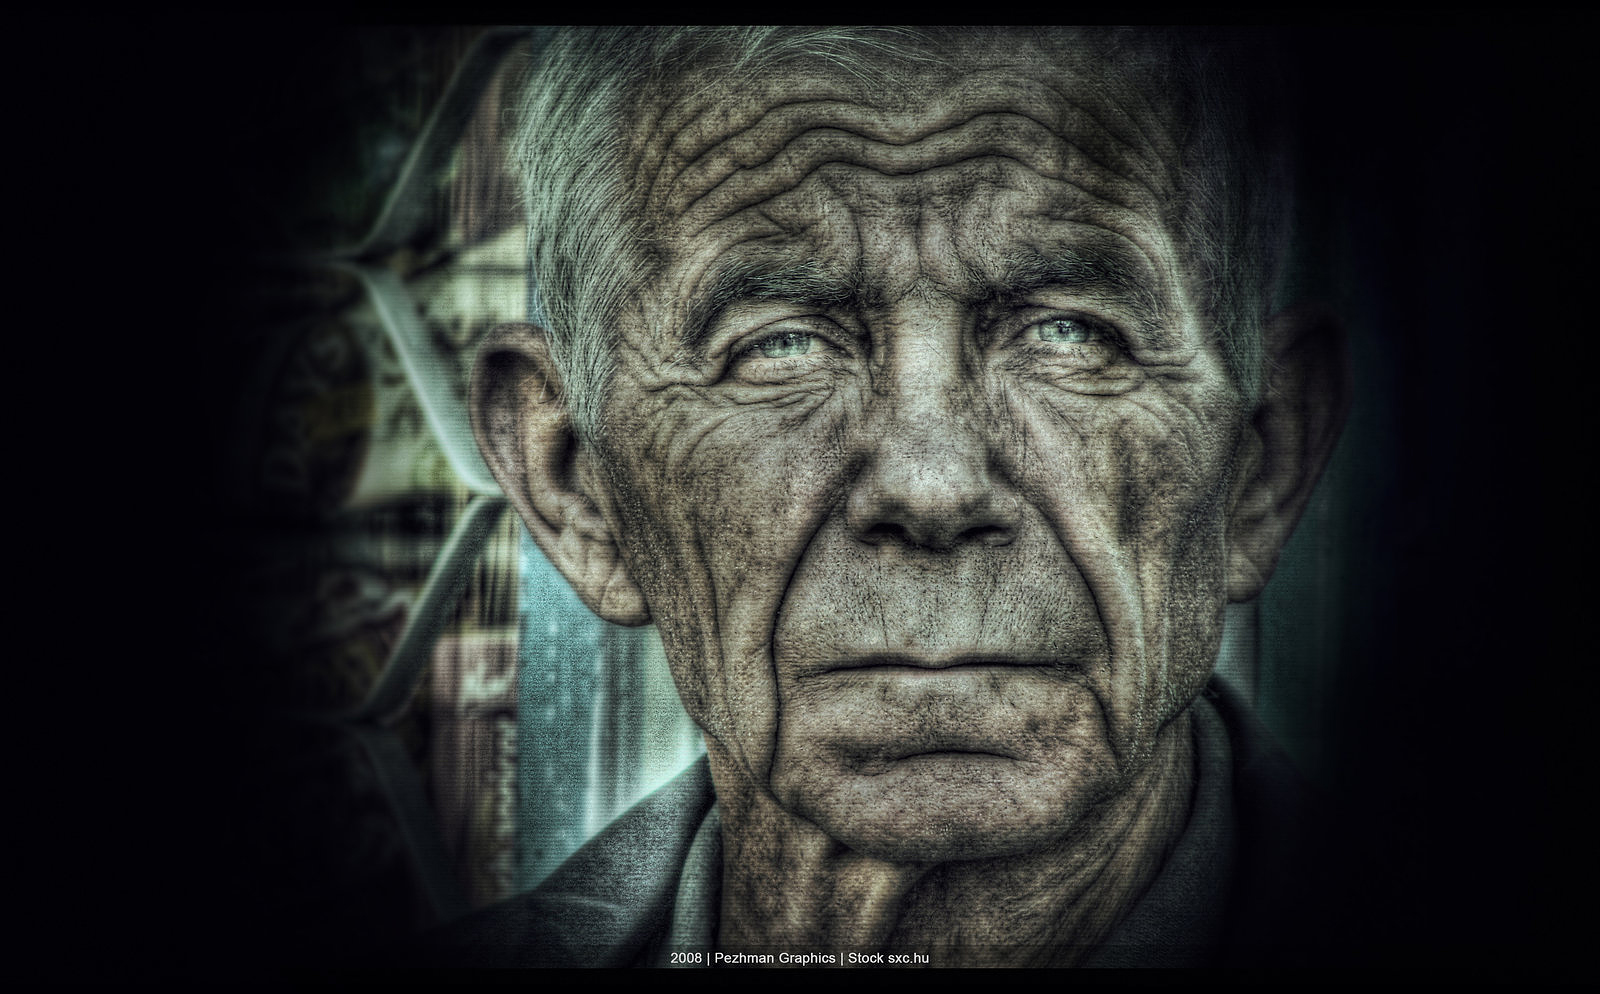 Old man in HDR by Mayheam